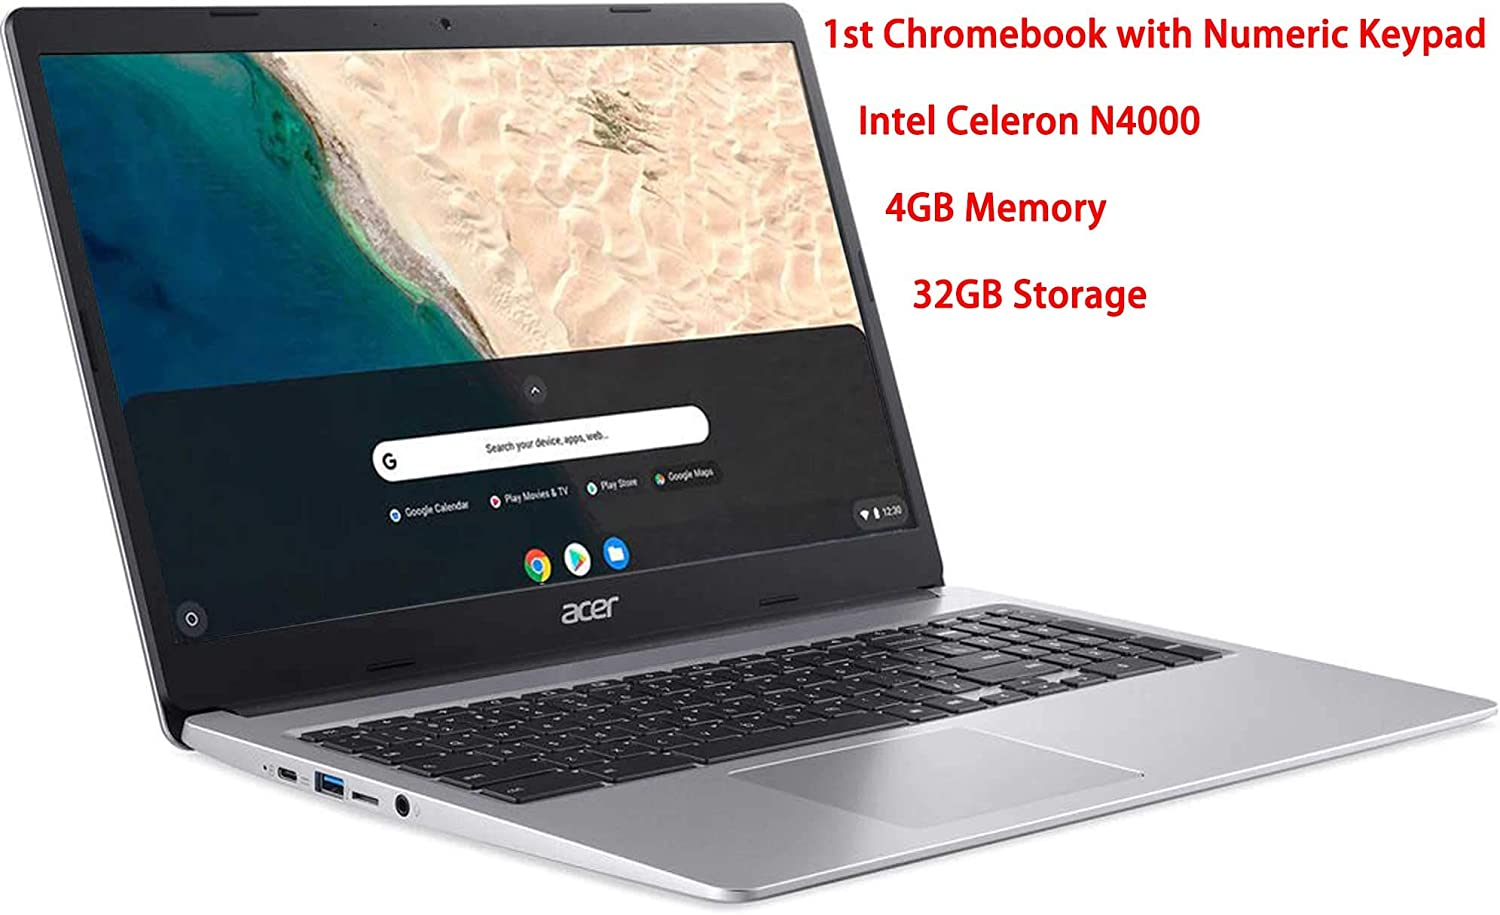 Acer 15.6inch Chromebook-Intel Celeron N4000 Processor, 4GB RAM, 32GB SSD, Intel UHD Graphics, Numeric Keypad, WiFi, Bluetooth, Chrome OS-(Renewed)